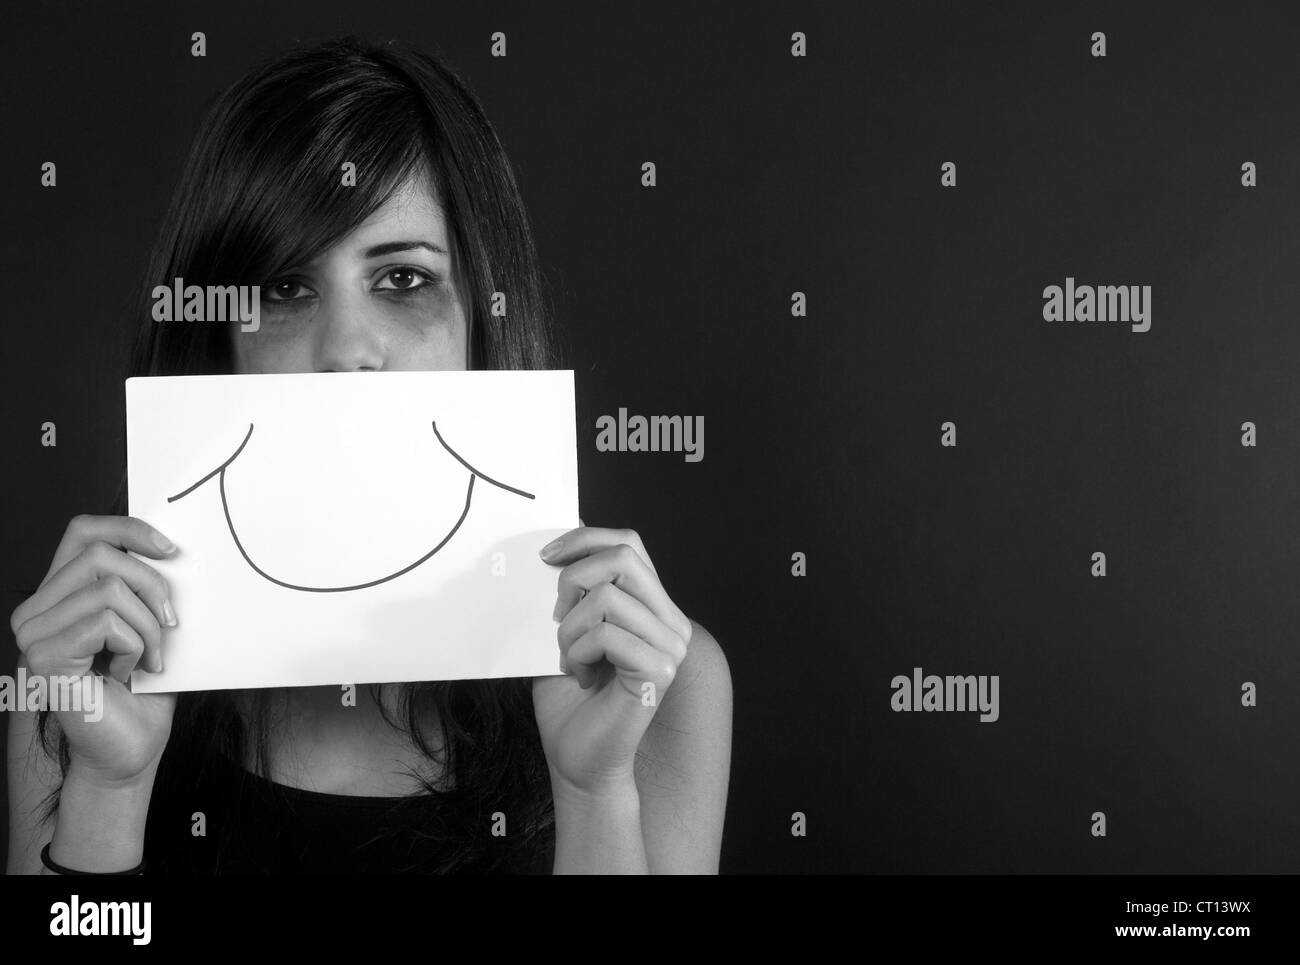 Crying teenage girl holding fake smile - Stock Image